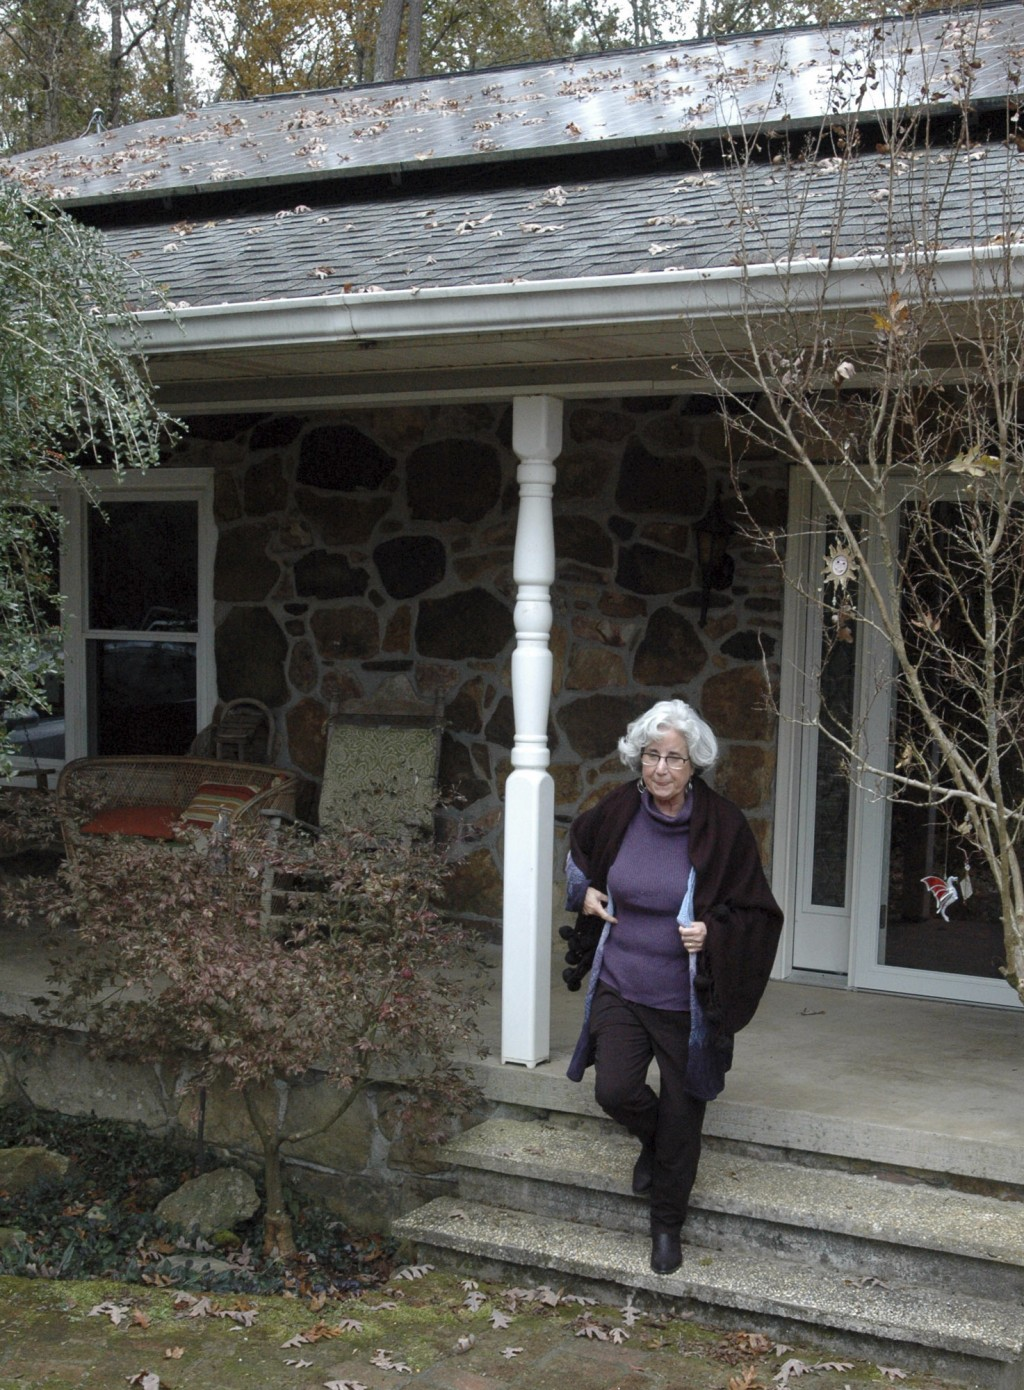 FILE - In this Thursday, Nov. 14, 2019 file photo, Teresa Thorne walks out of her solar power-equipped home near Springville, Ala. The fees imposed by...